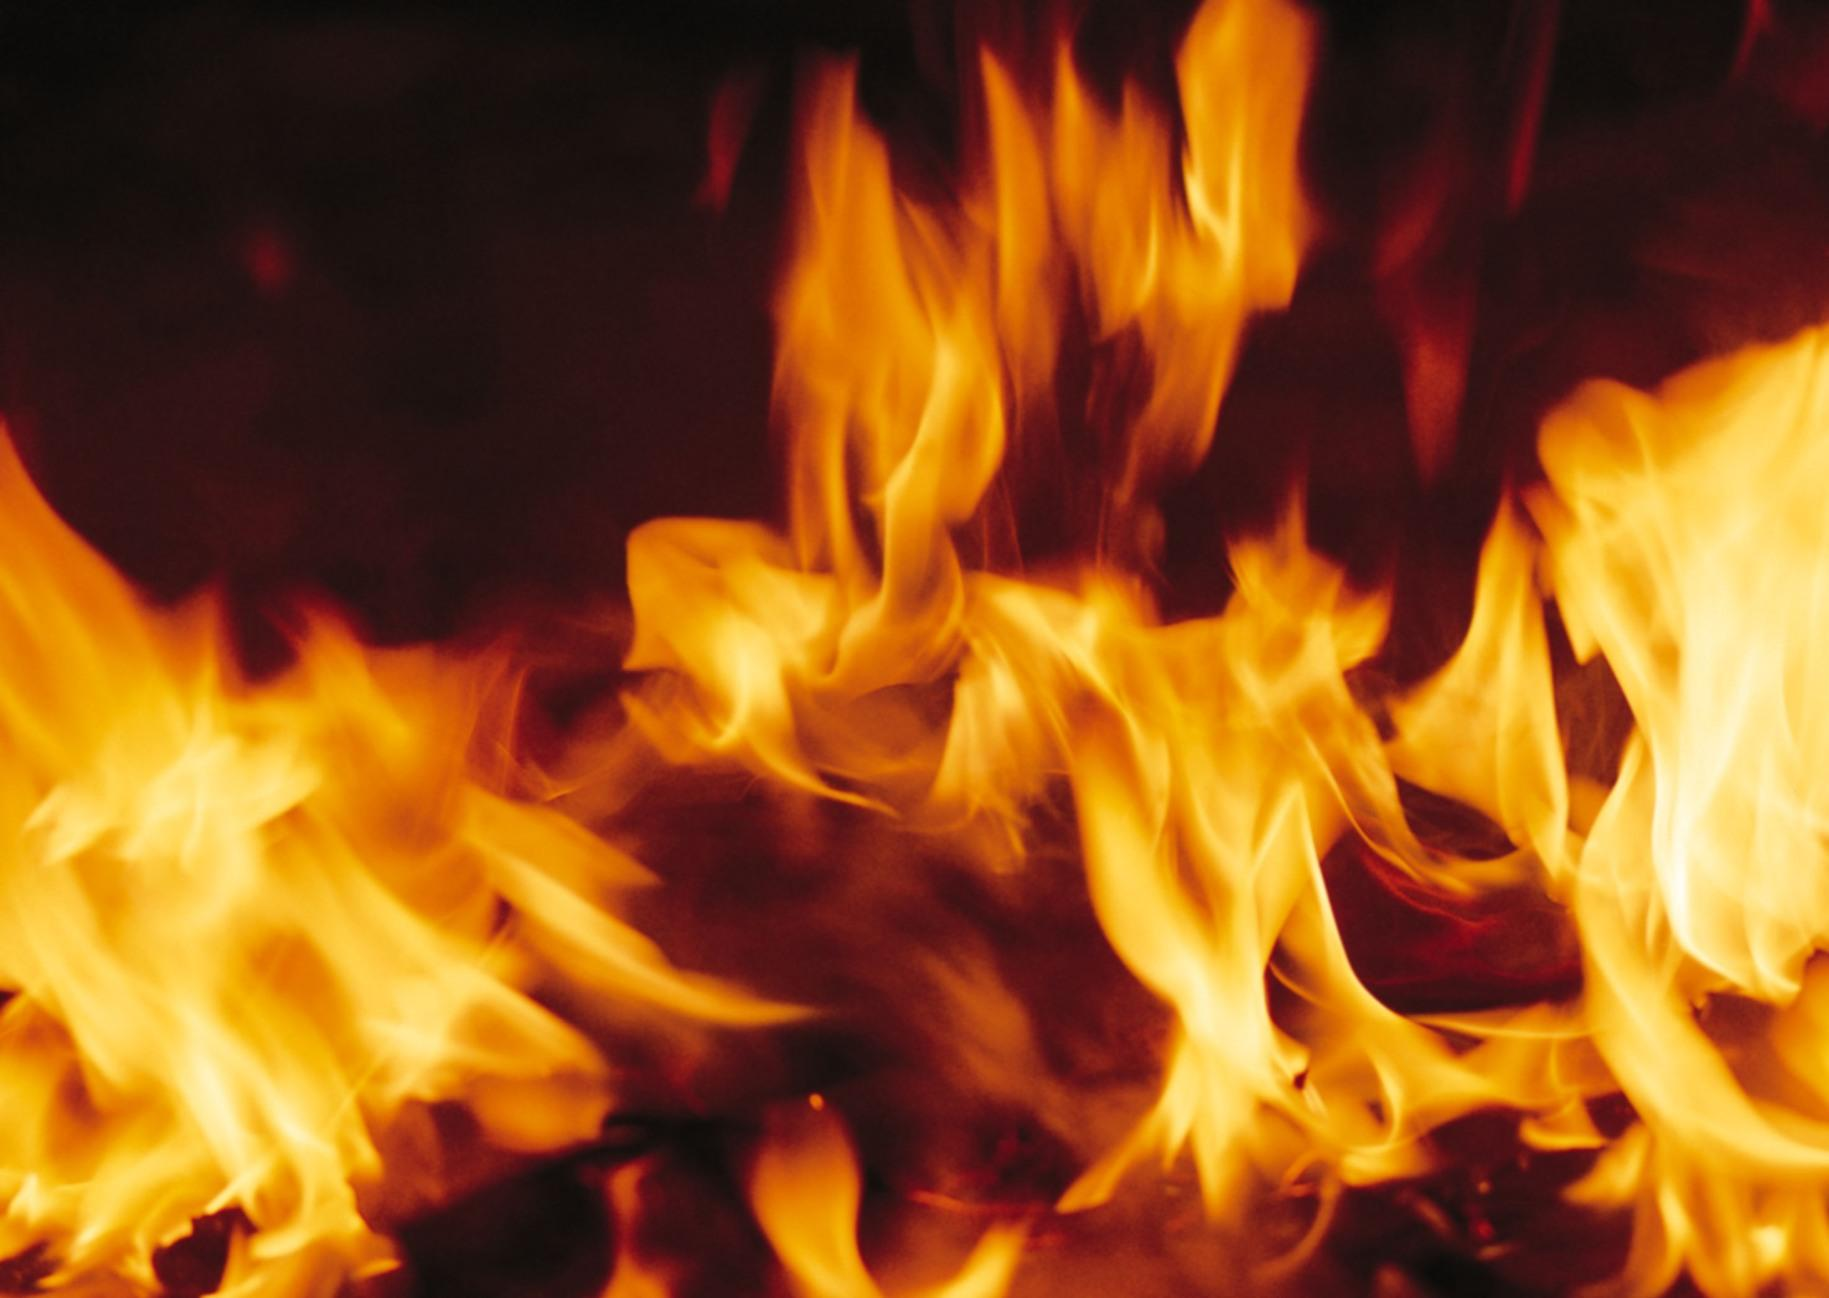 Fire Wallpaper And Background Image 1829x1298 Id 420635